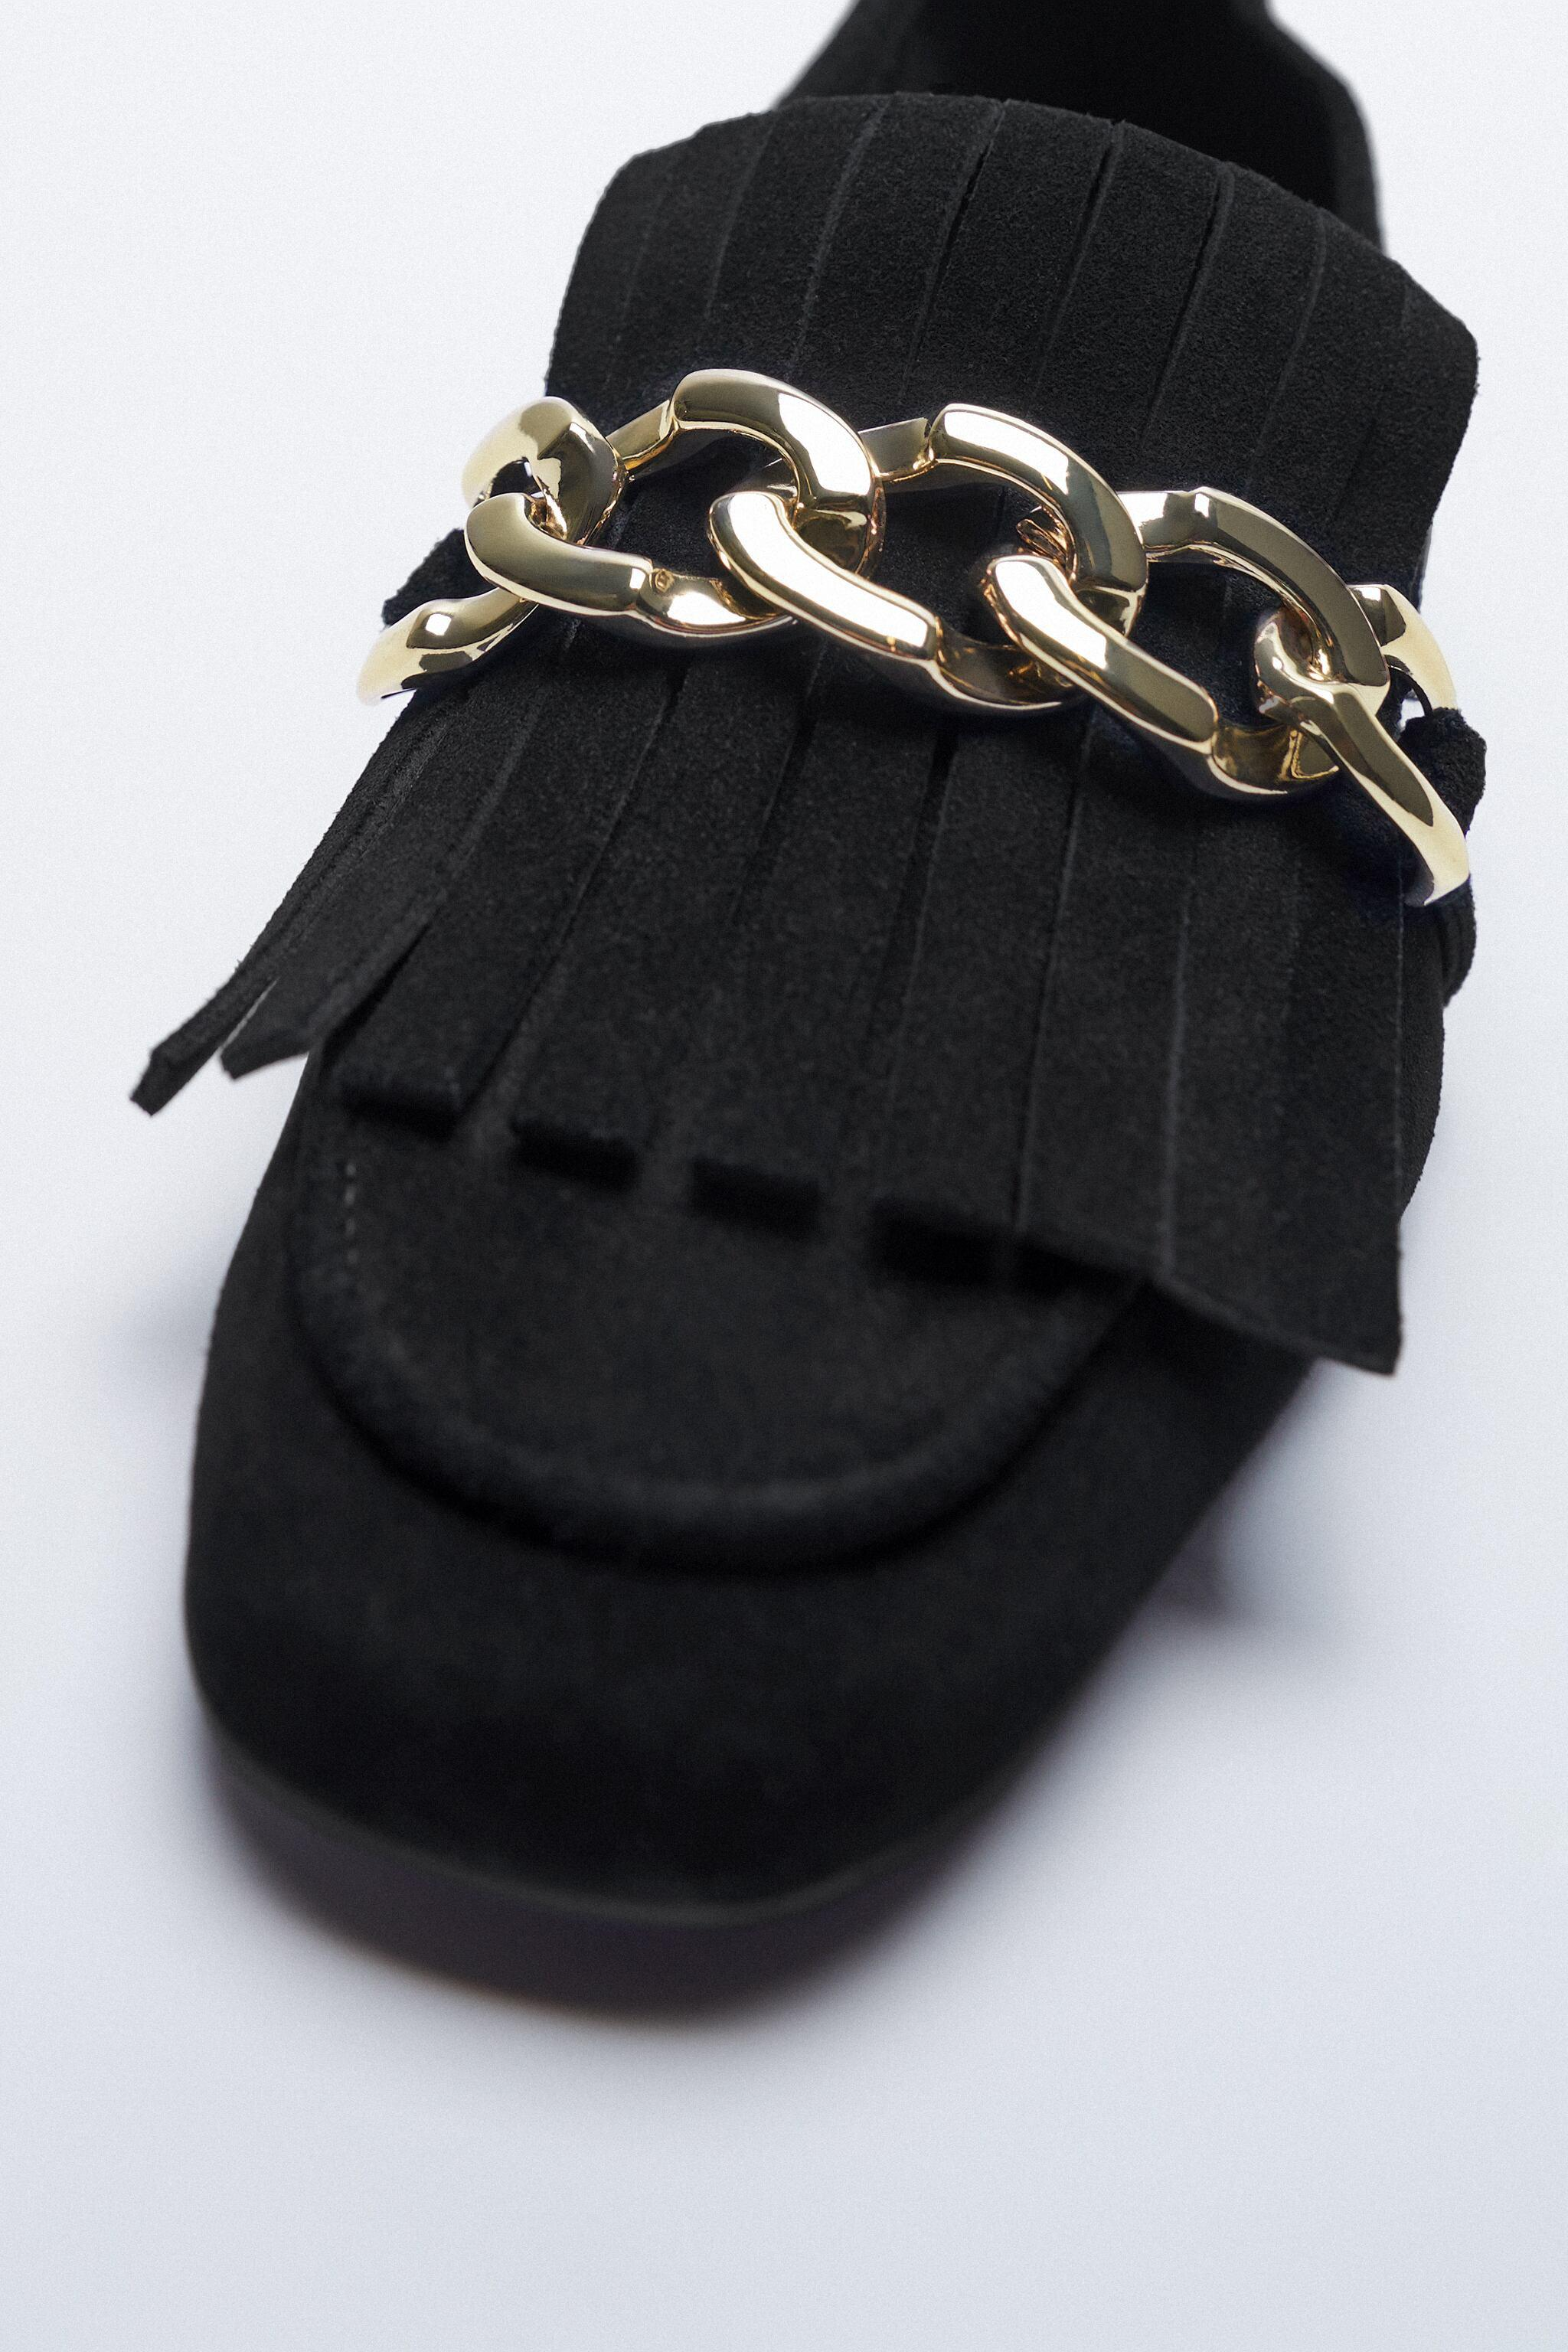 FRINGED SPLIT LEATHER MOCCASINS WITH CHAIN 8